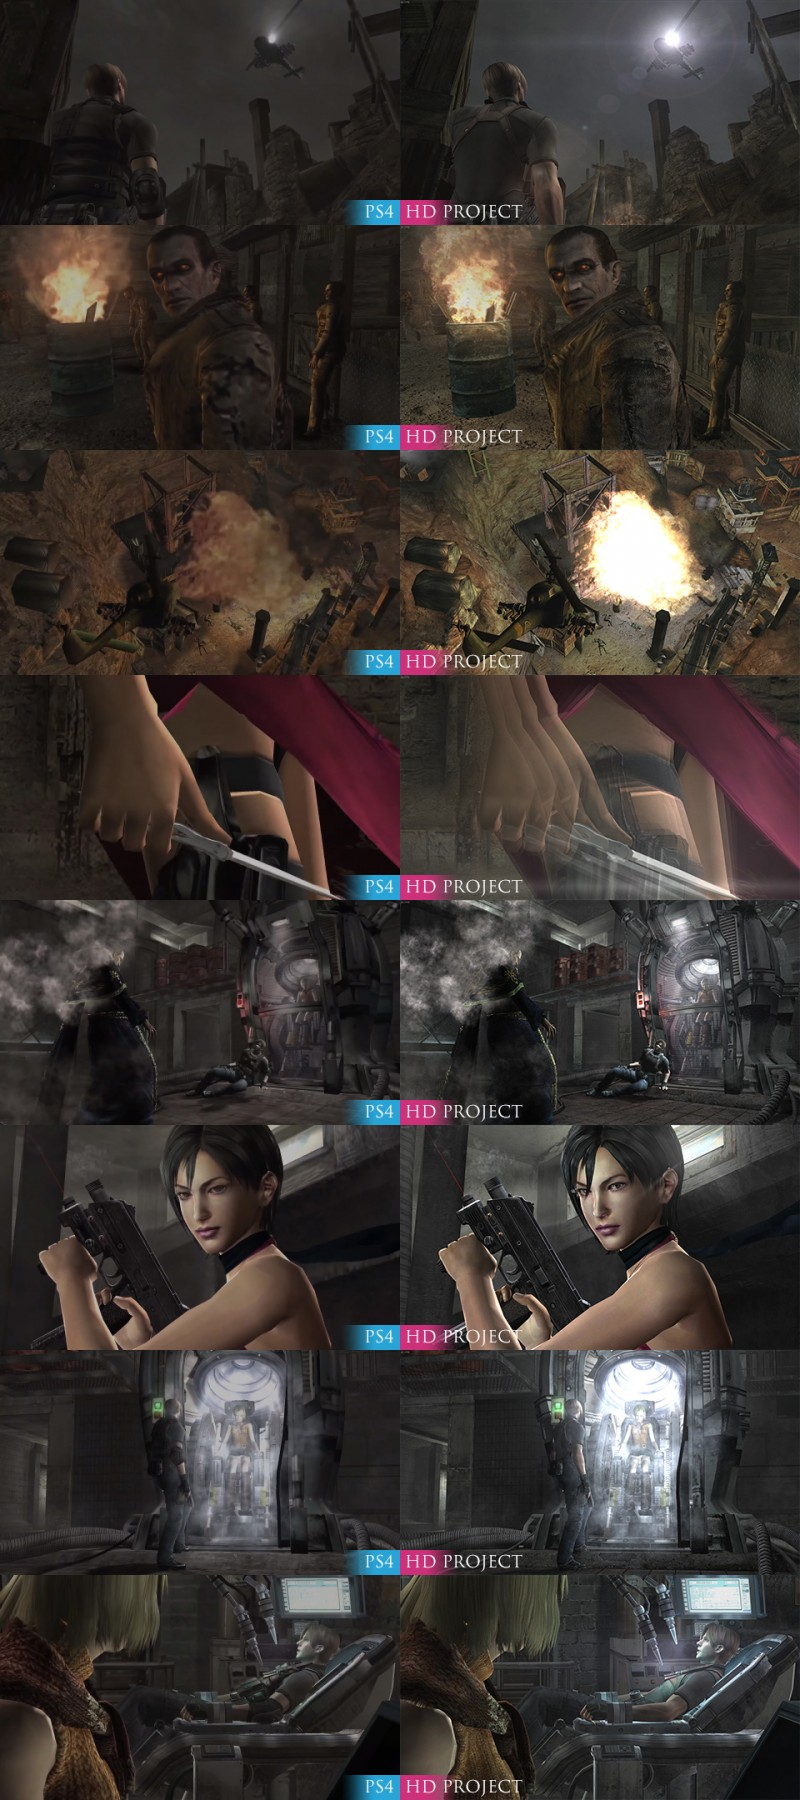 New comparison of the modification of Resident Evil 4 HD Project with the original